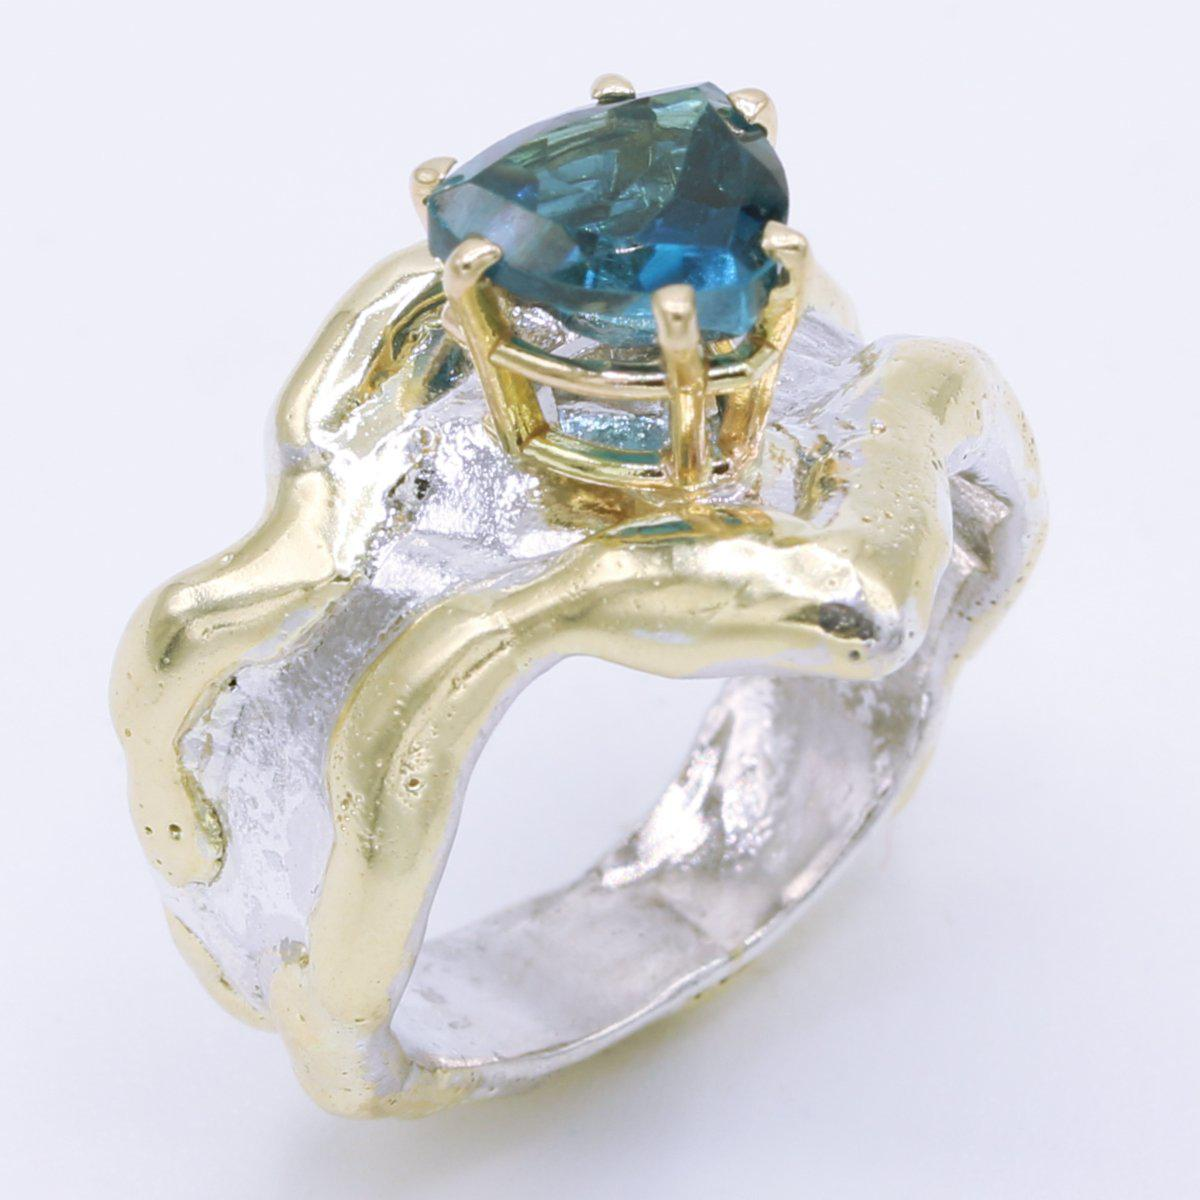 14K Gold & Crystalline Silver London Blue Topaz Ring - 34906-Fusion Designs-Renee Taylor Gallery